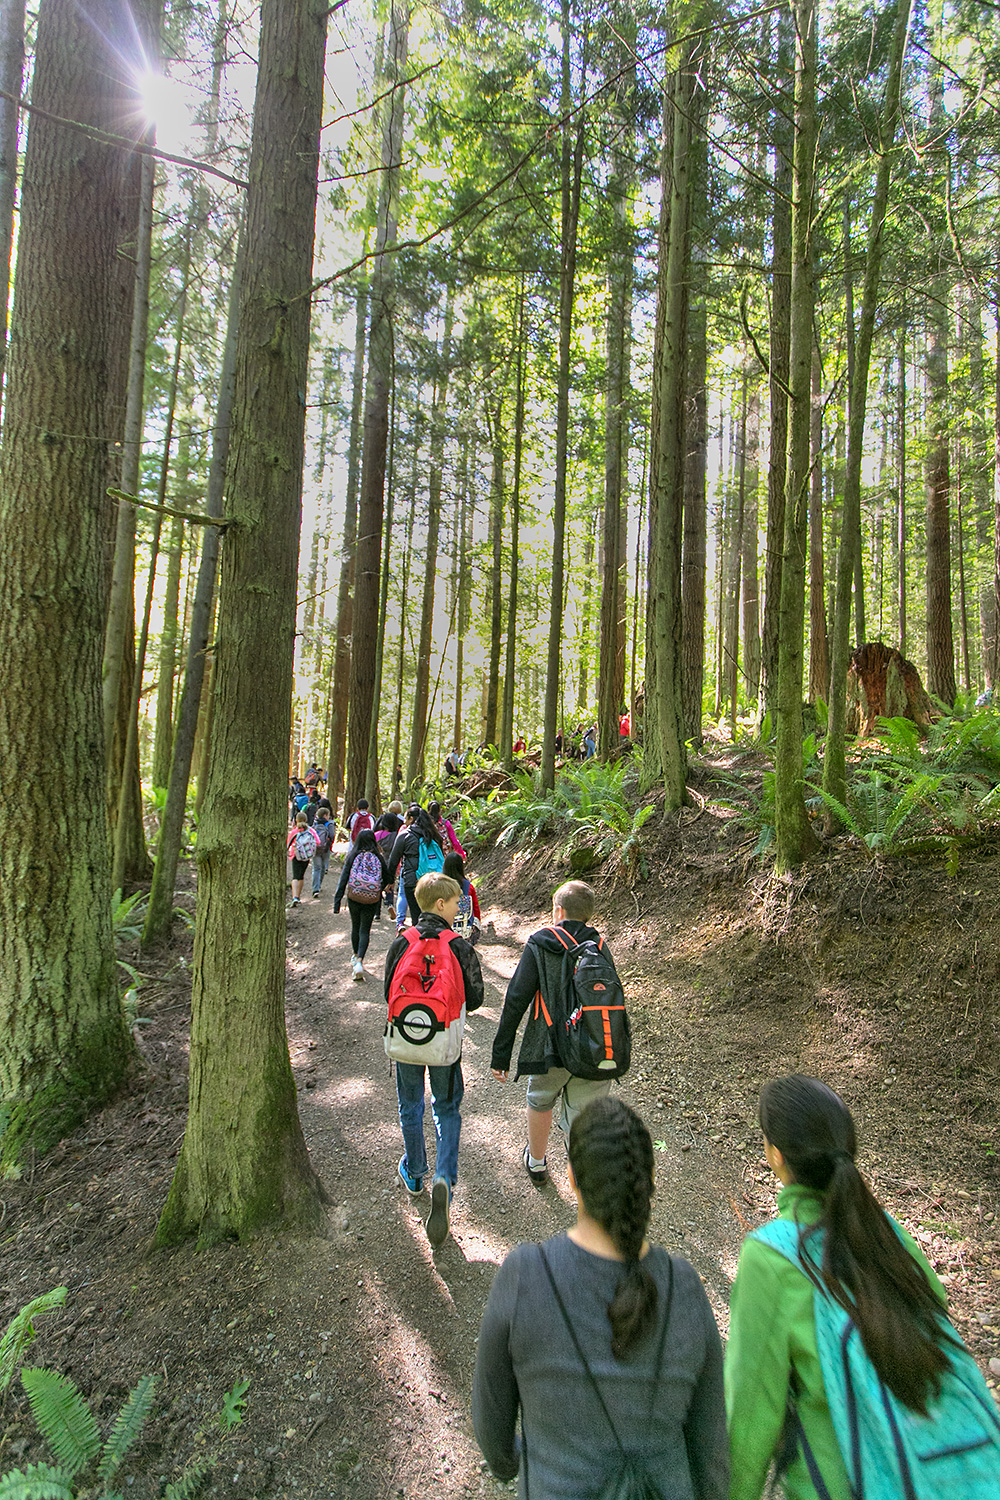 School by school, kids will get the opportunity to head up to Little Mountain for a day of the outdoor learning and recreation.